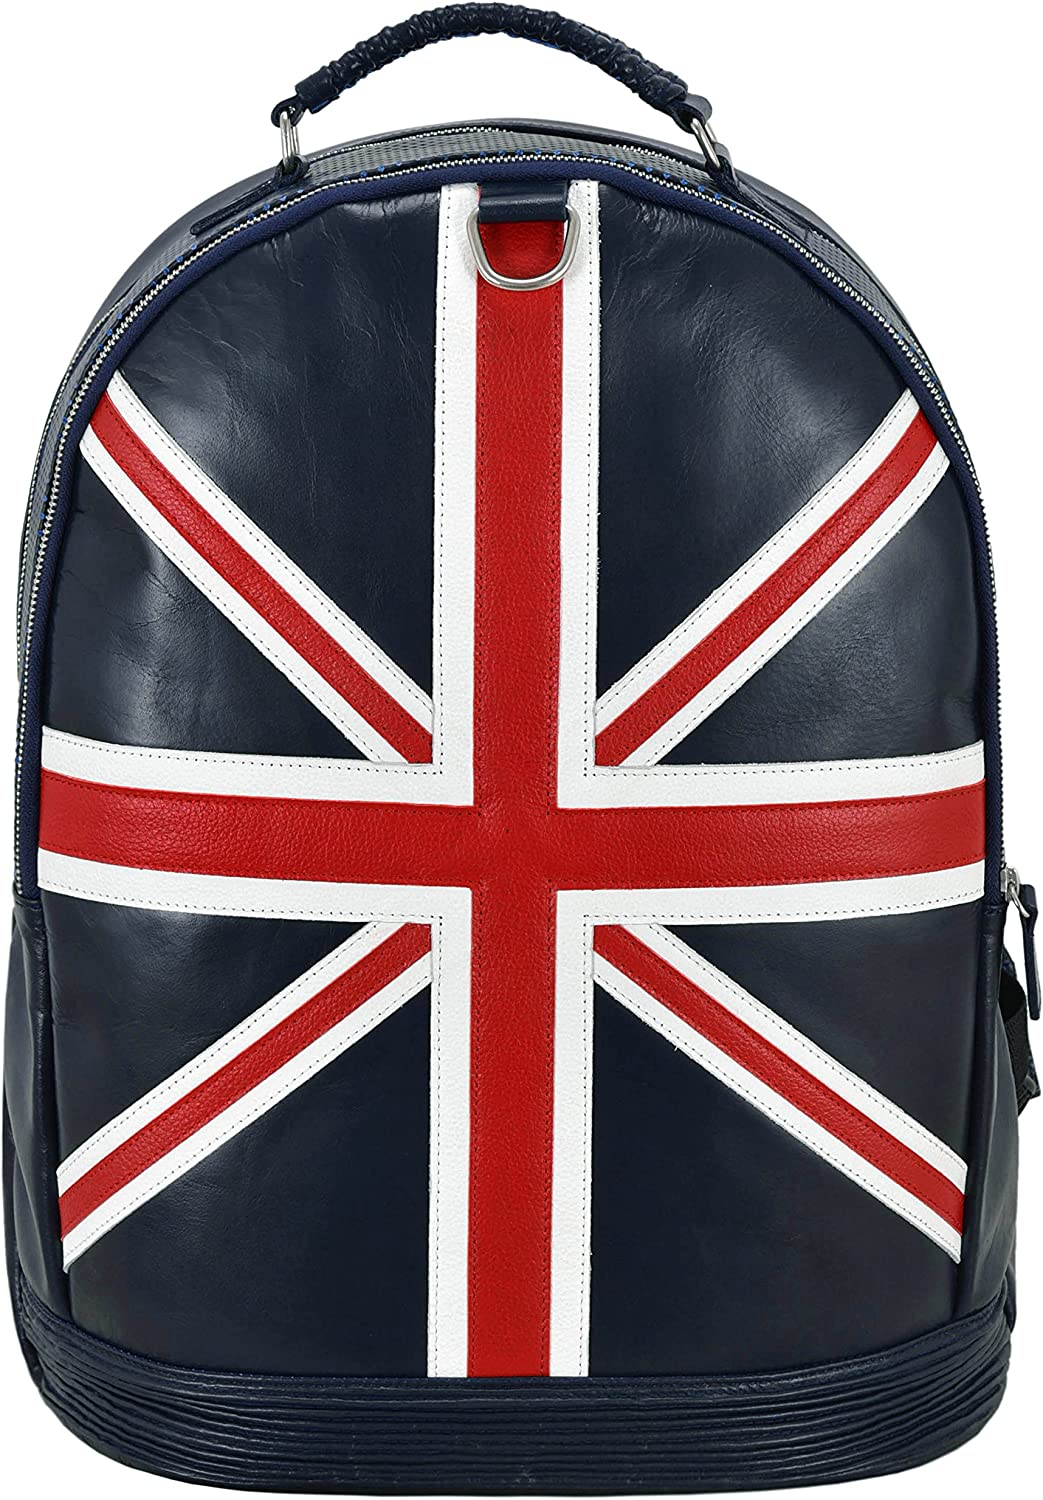 Union Jack Leather Backpack Navy Blue Perforated Classic Style 100/% Real Leather 1005